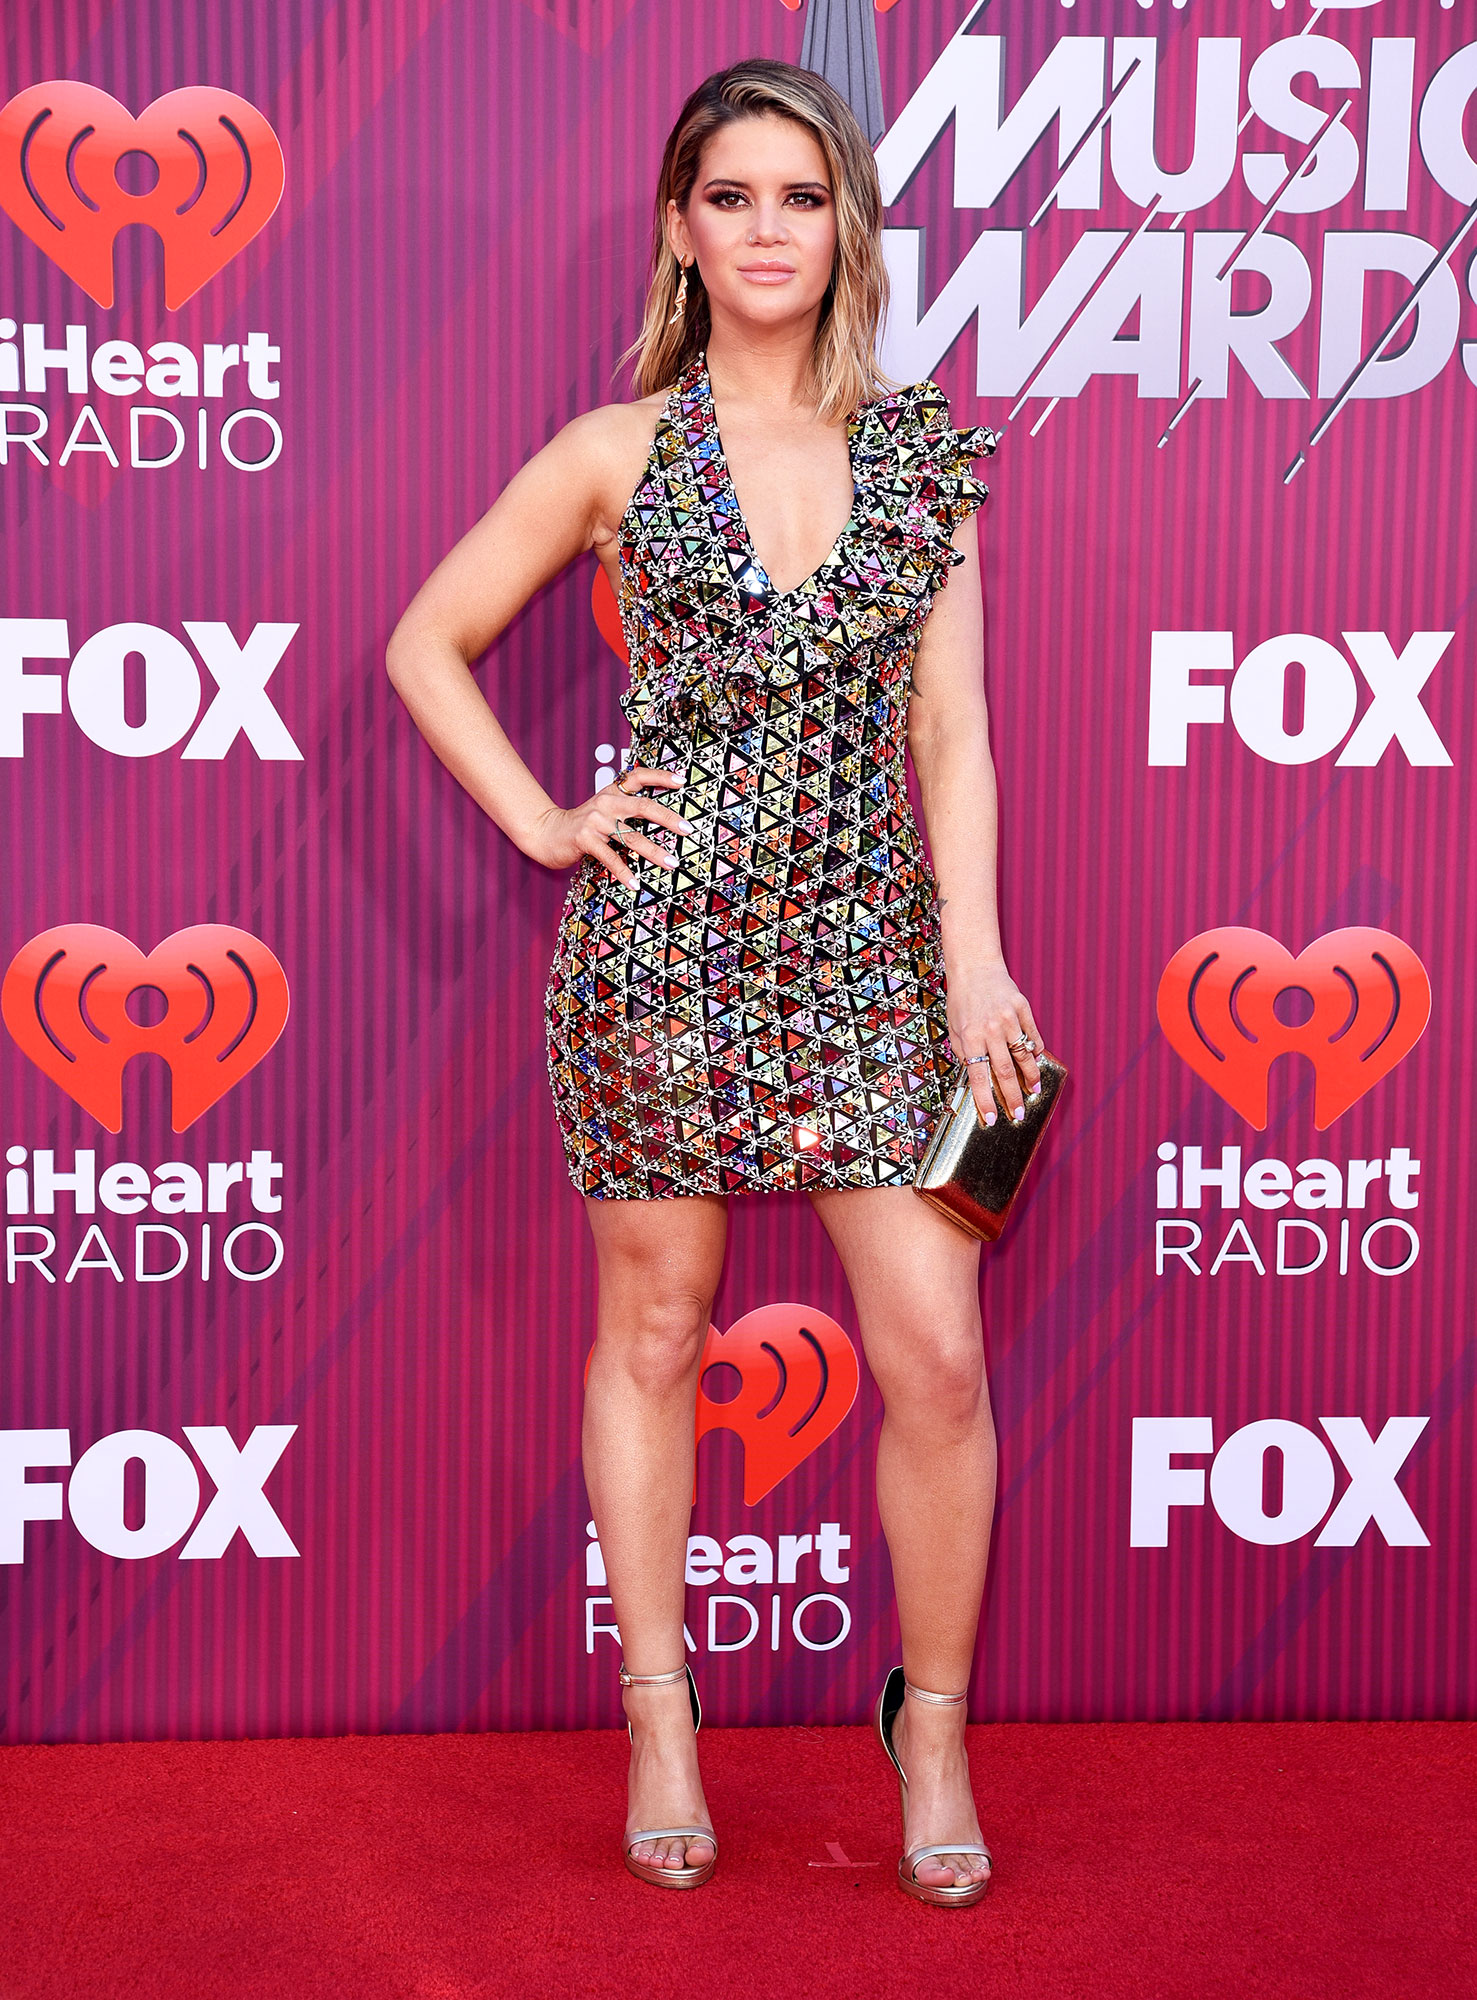 Maren Morris See What the Stars Wore to the iHeart Radio Music Awards 2019 - Wearing a colorful Rami Kadi mini and Versace heels.